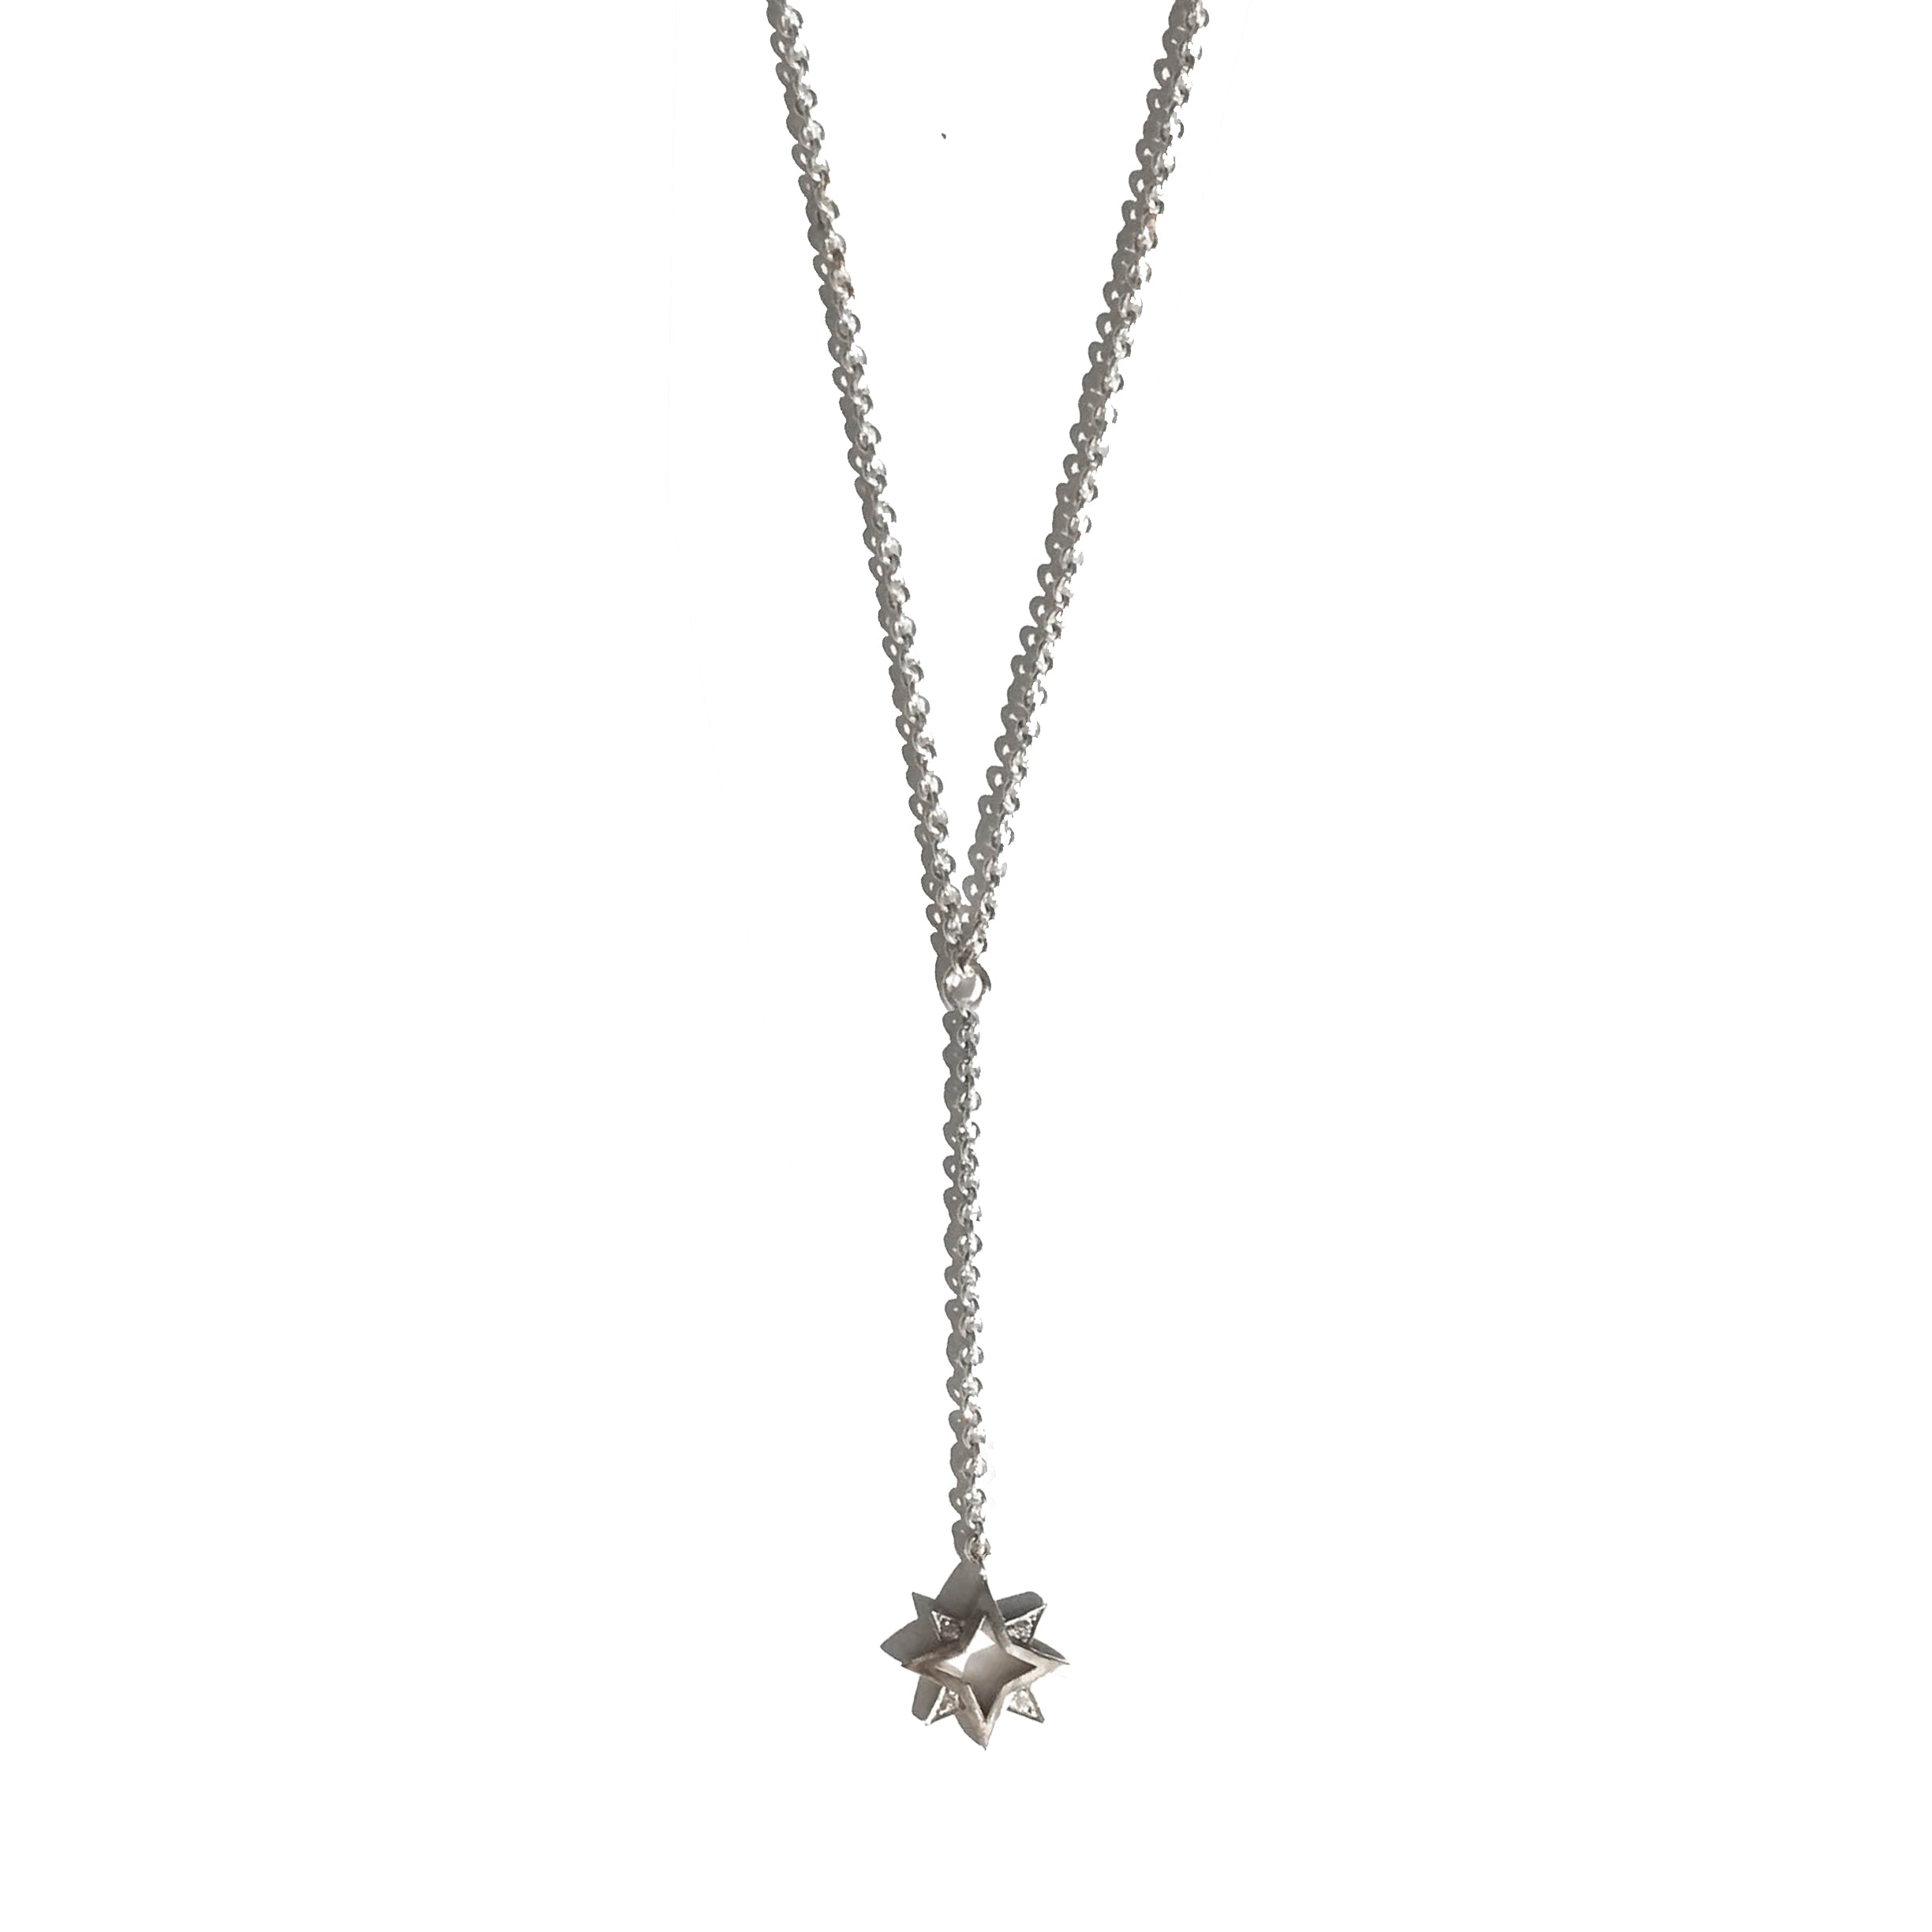 NORTH STAR Y NECKLACE